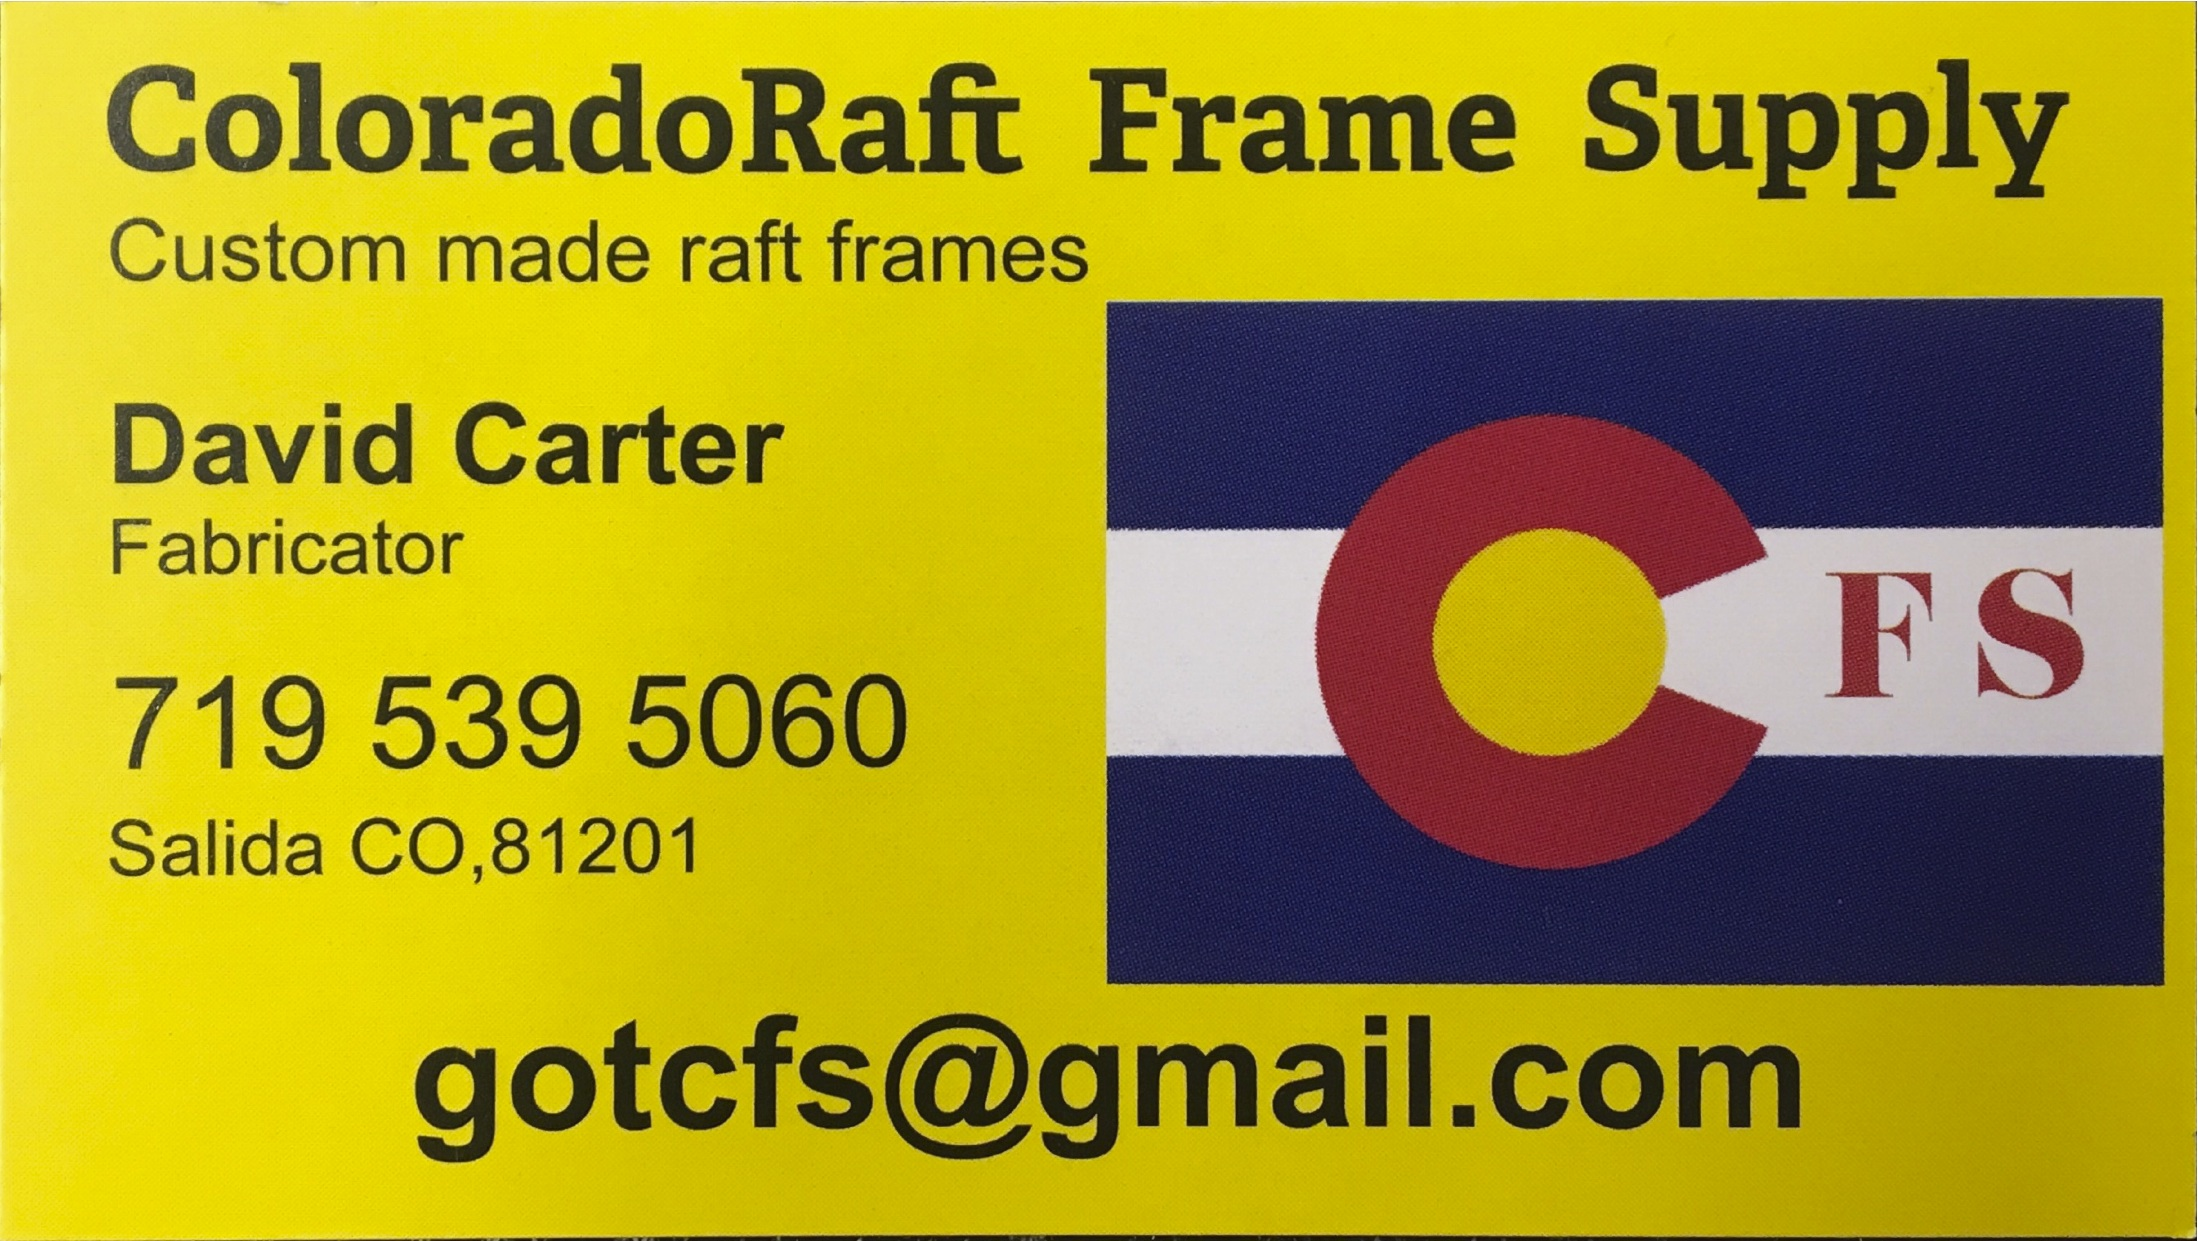 coloradoraftframesupply.jpg